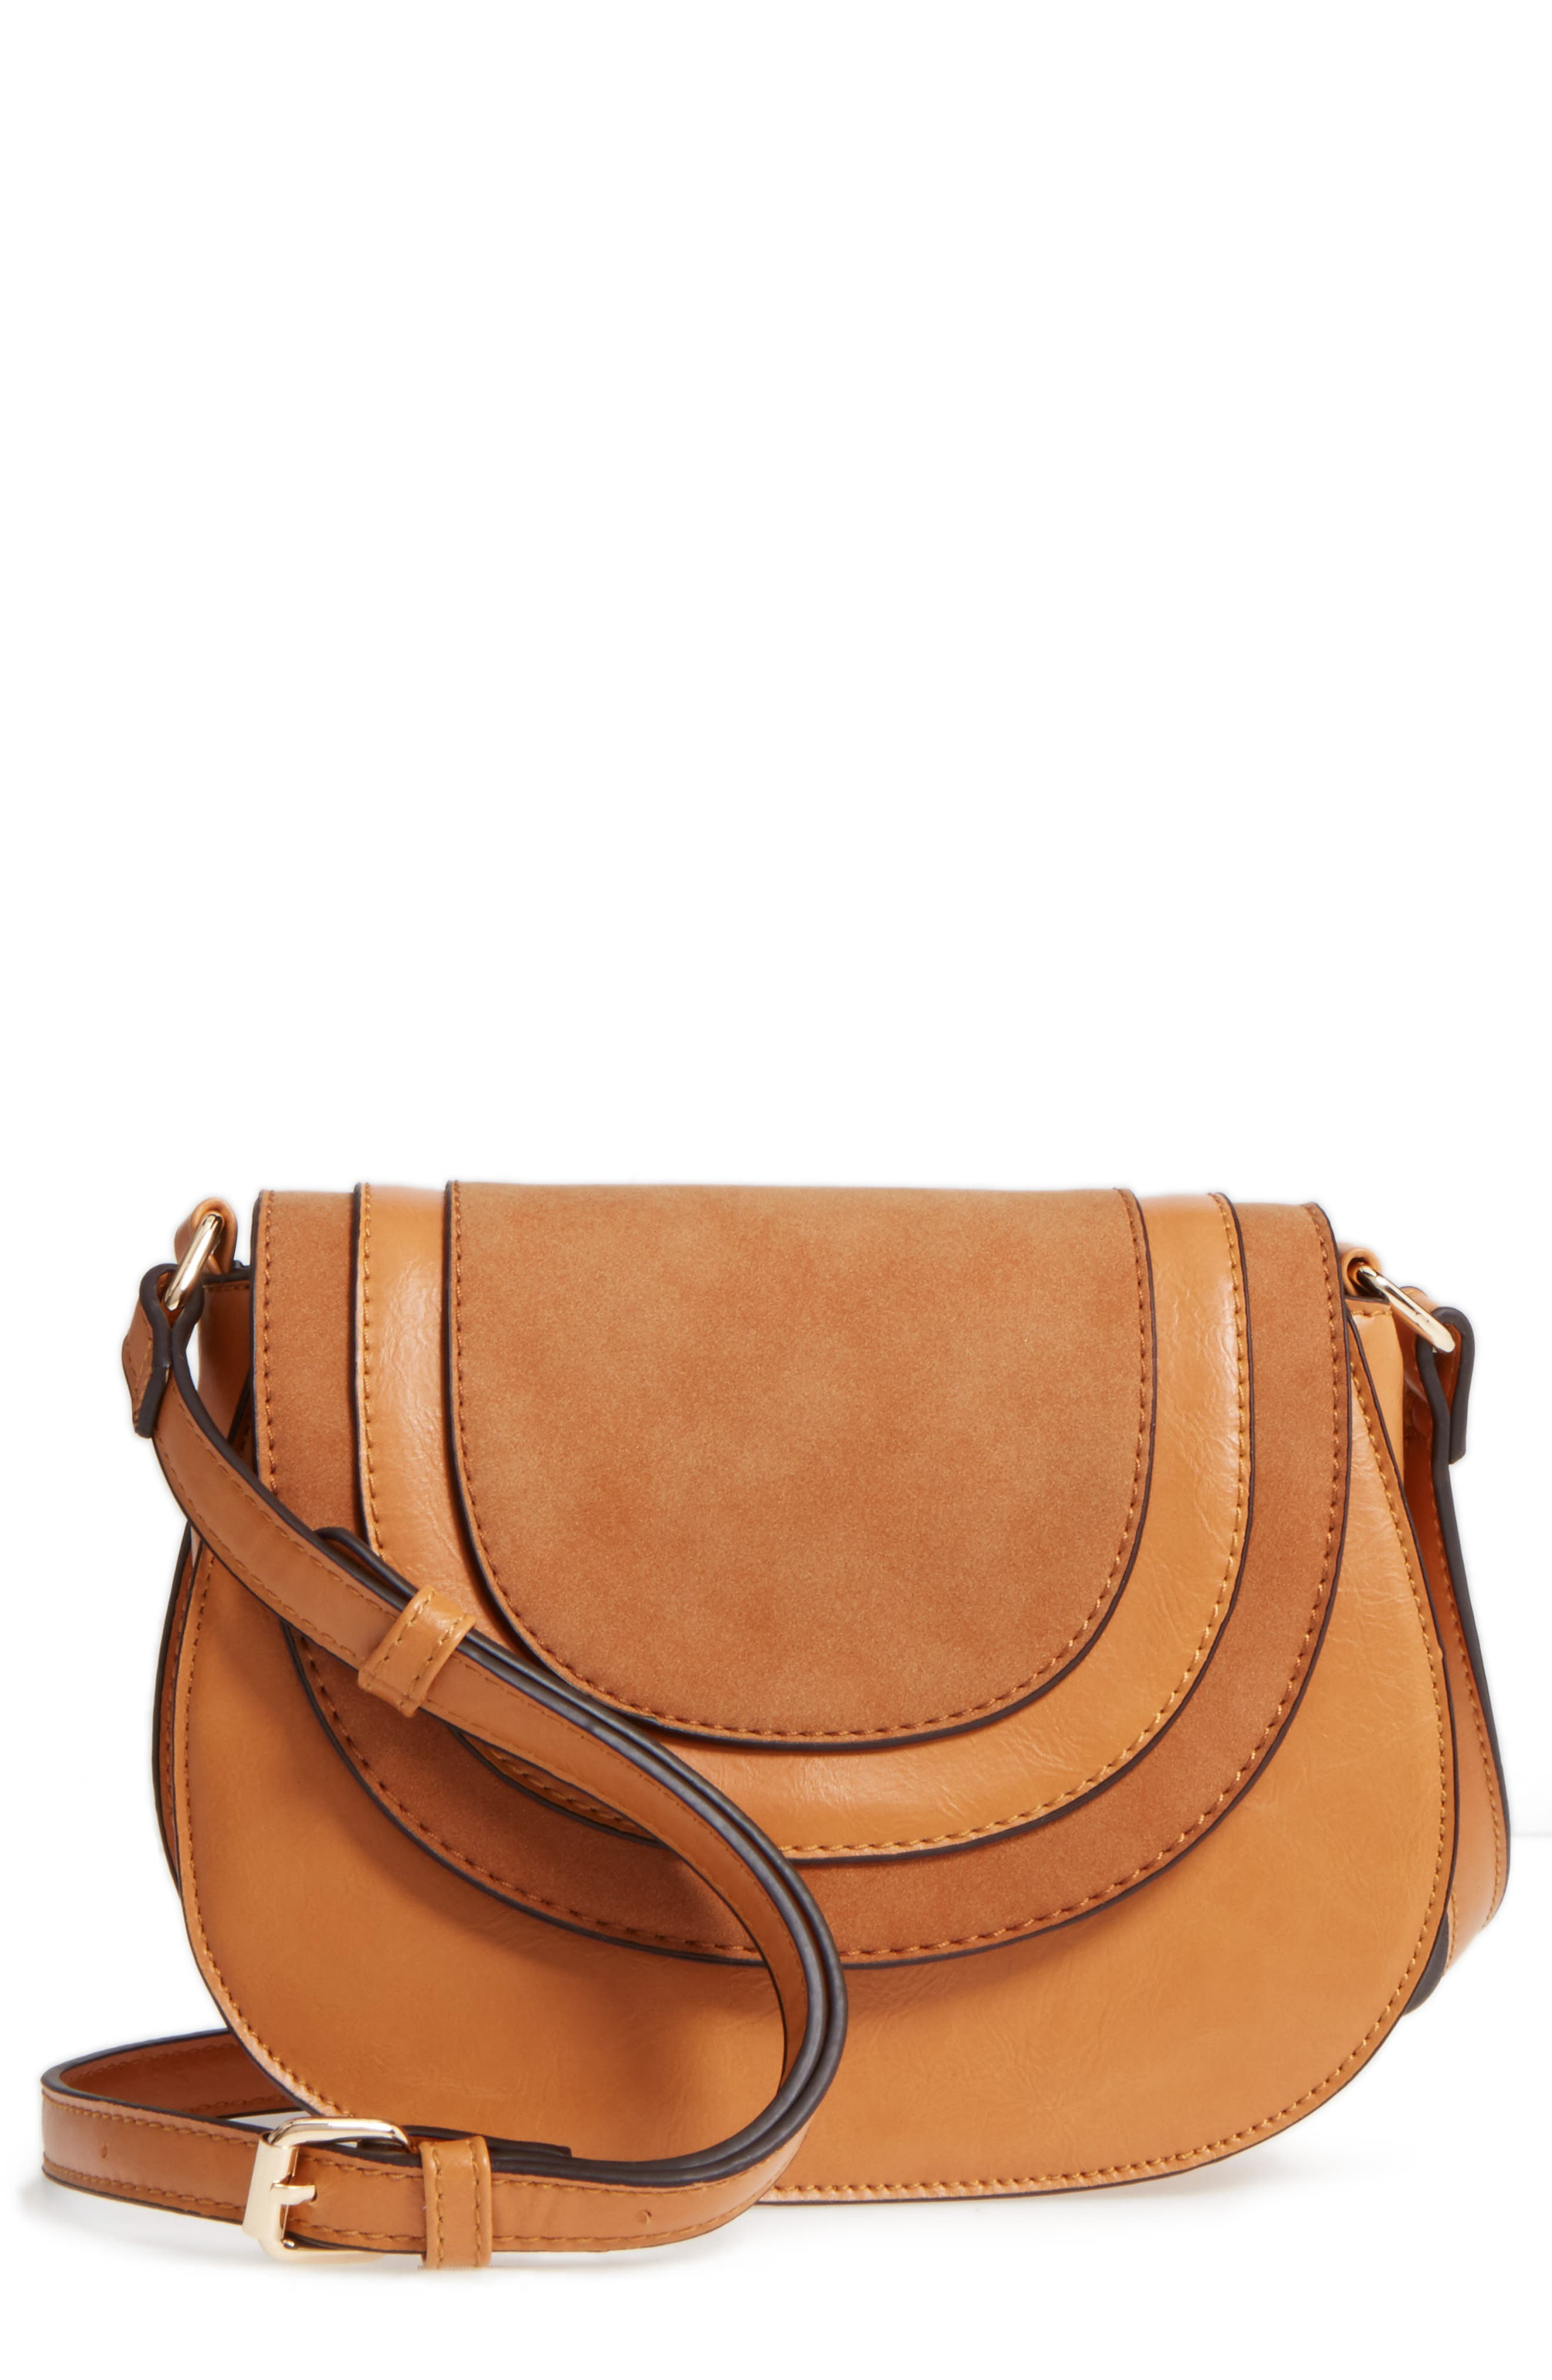 Alternate Image 1 Selected - Sole Society Bryson Faux Leather Crossbody Bag